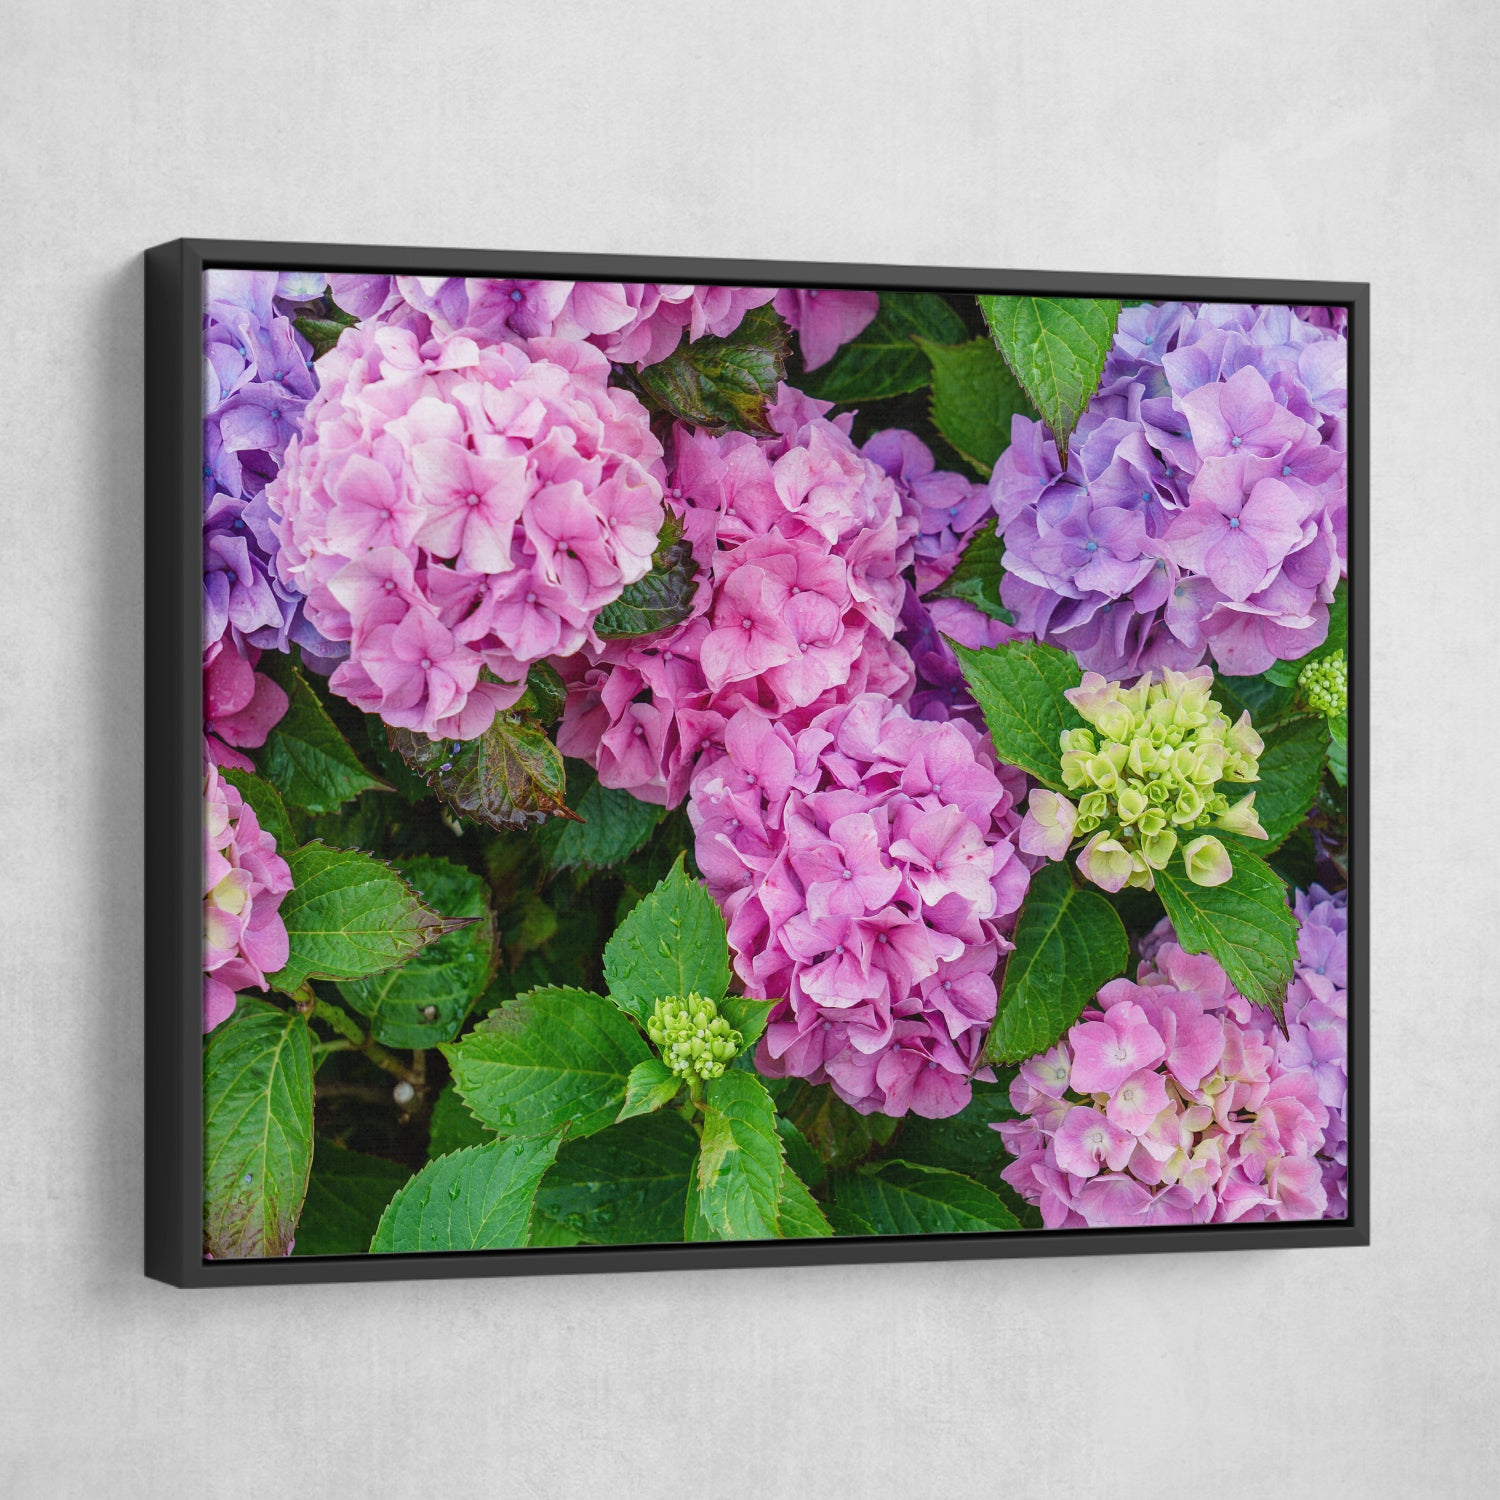 Hydrangea Flowers wall art black frame